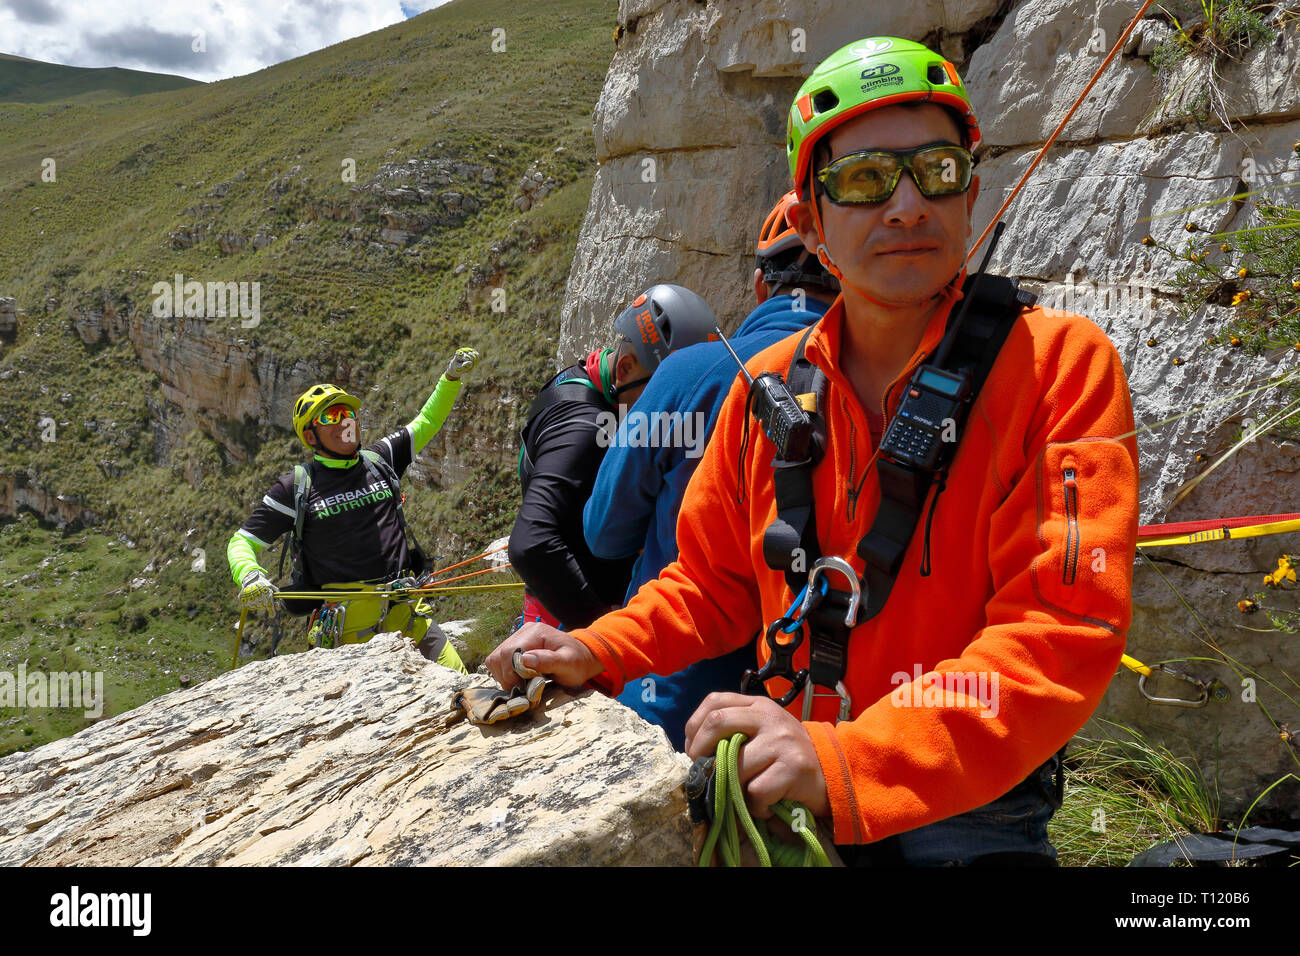 Canchayllo, Jauja - MARCH 17: Adventure sport, rappel practiced in the stone column of the imposing Shucto canyon (twisted) is a geological formation  - Stock Image